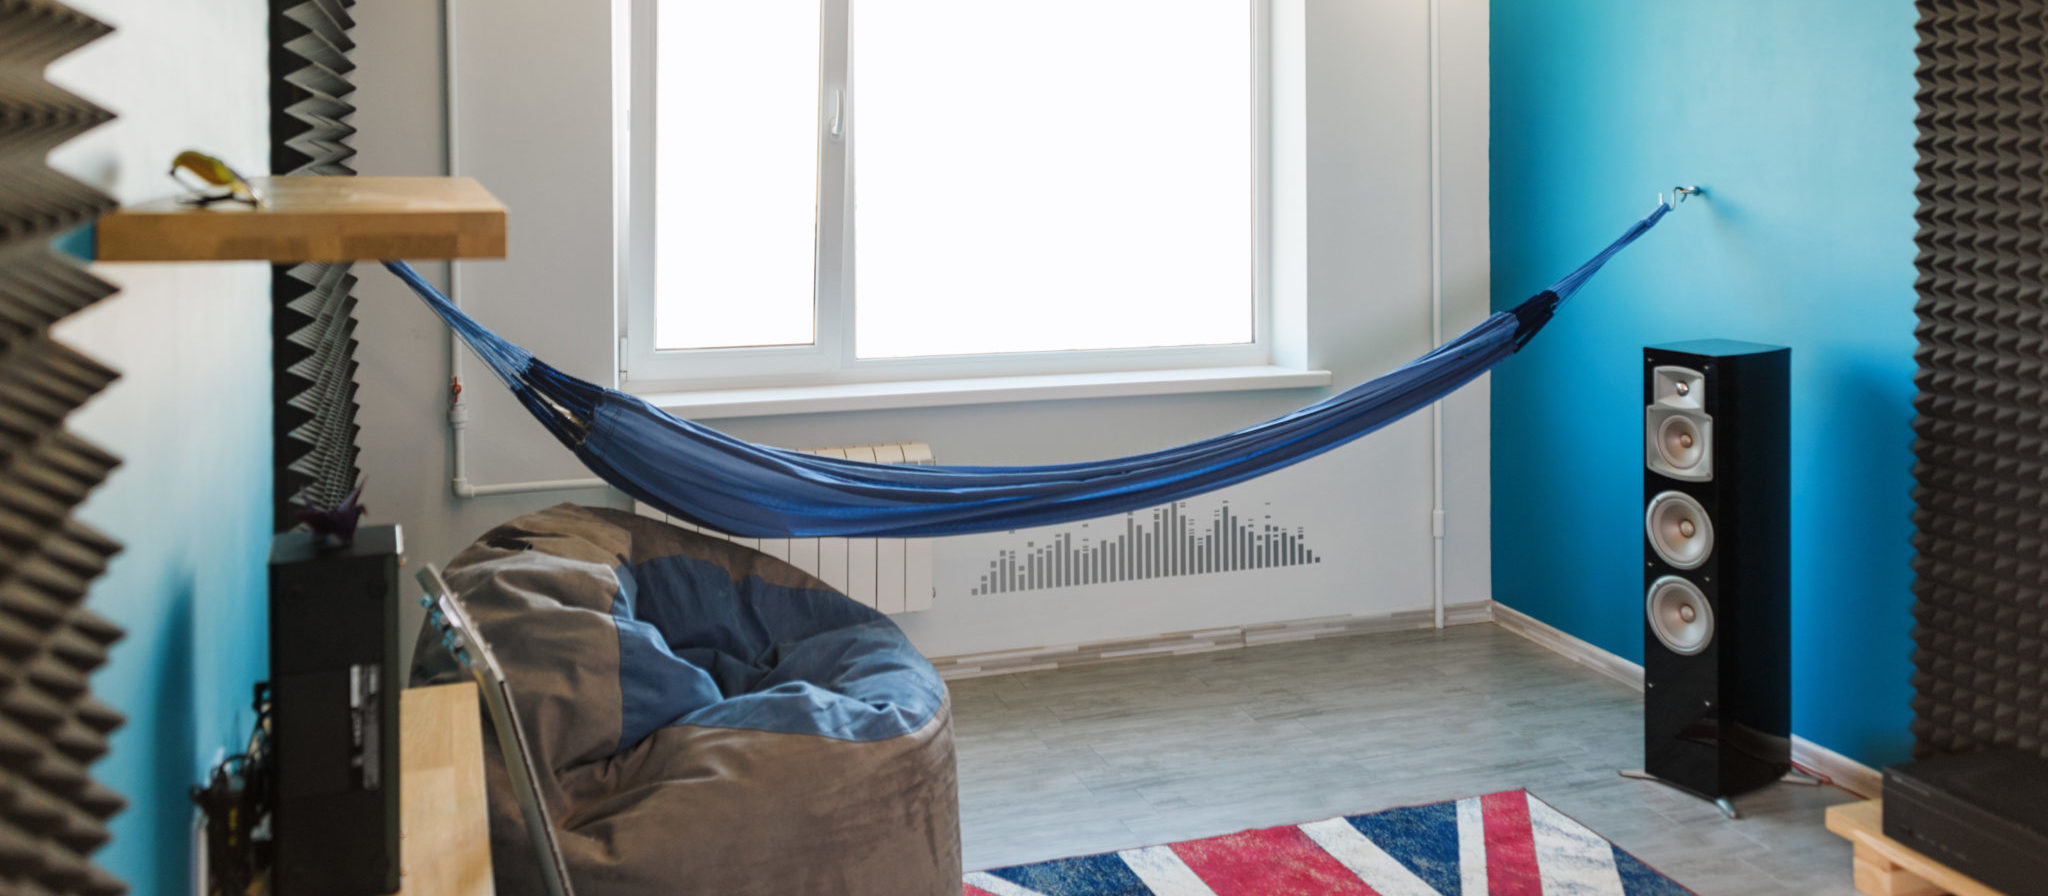 The use of a hammock in your home can free up space in your bedroom, or even